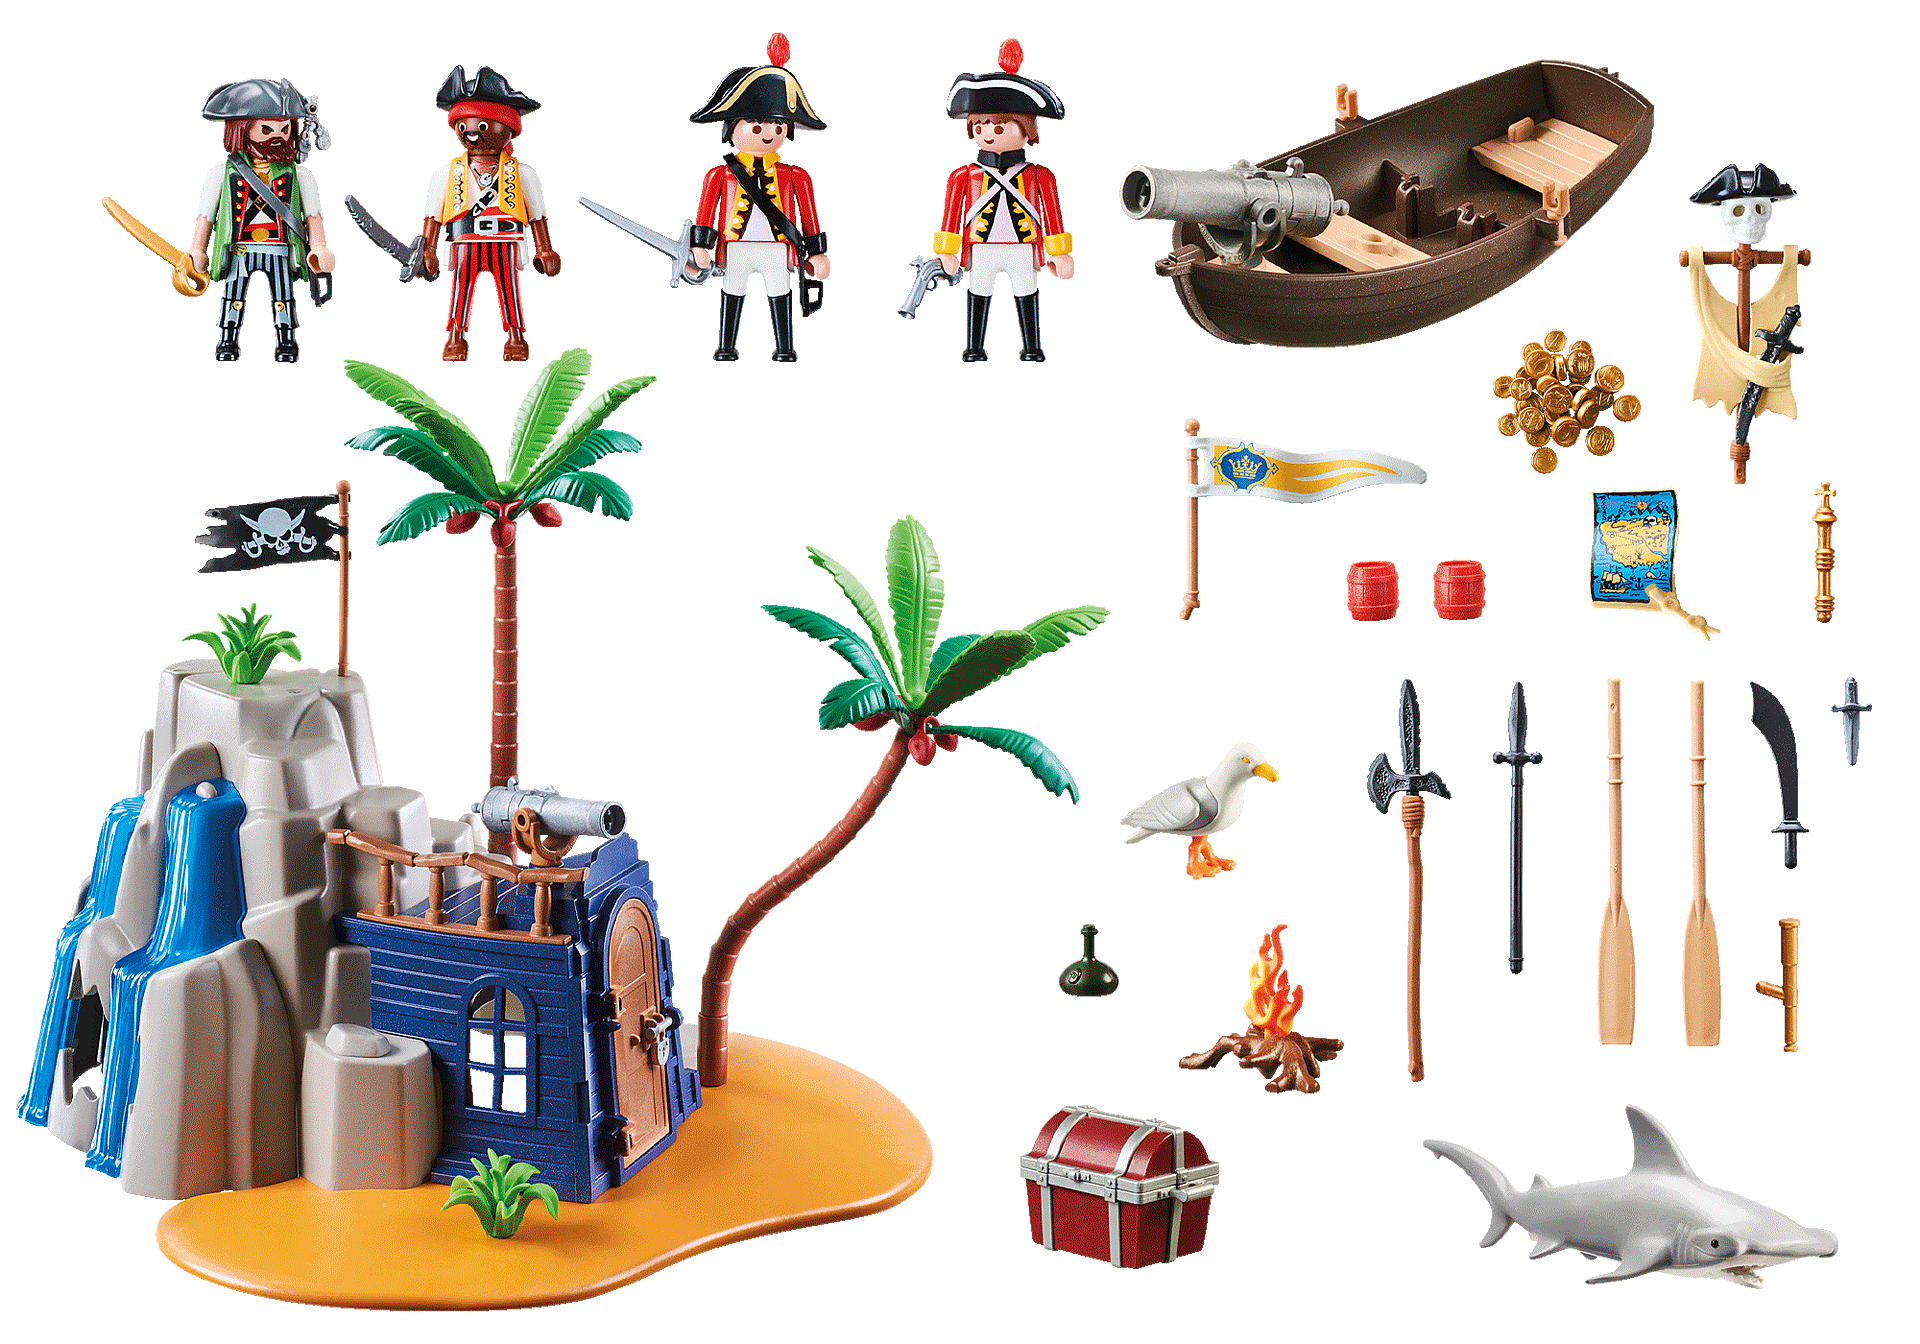 70556 Pirate Island Hideout zoom image3